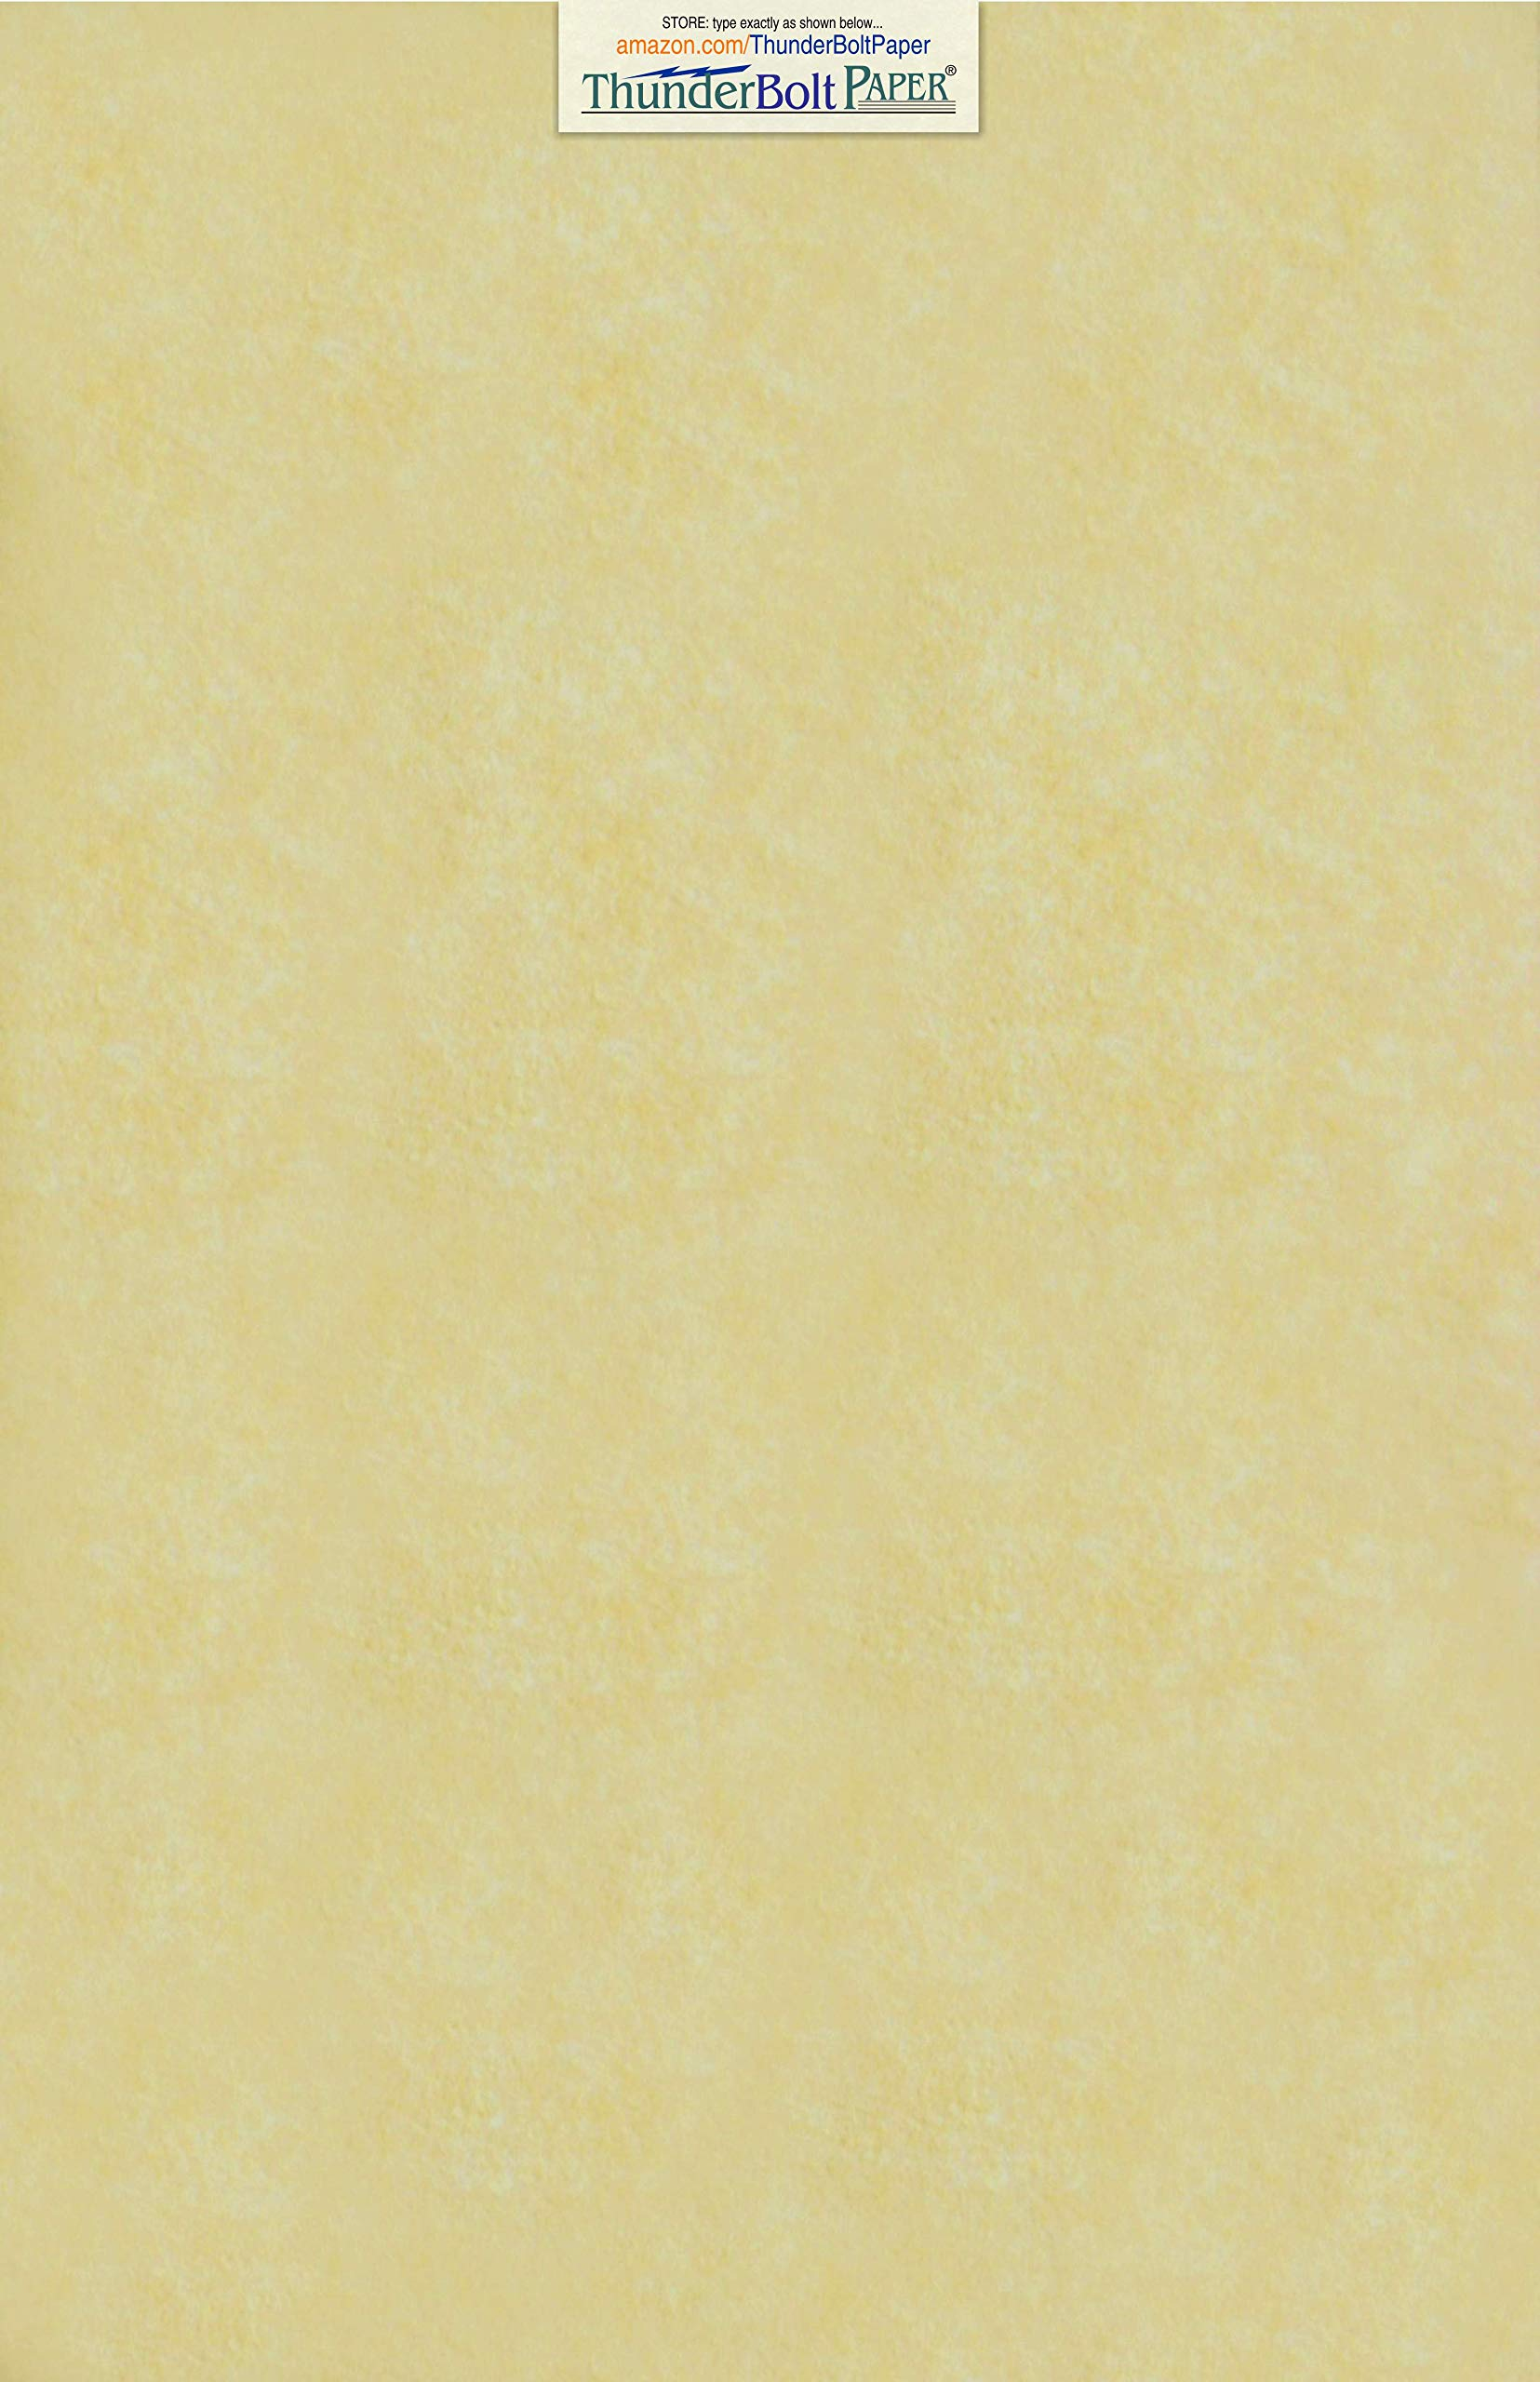 50 Gold Parchment 60lb Text Weight 11 X 17 inches Stationery Paper Colored Sheets Tabloid|Ledger Size -Printable Old Parchment Semblance by ThunderBolt Paper